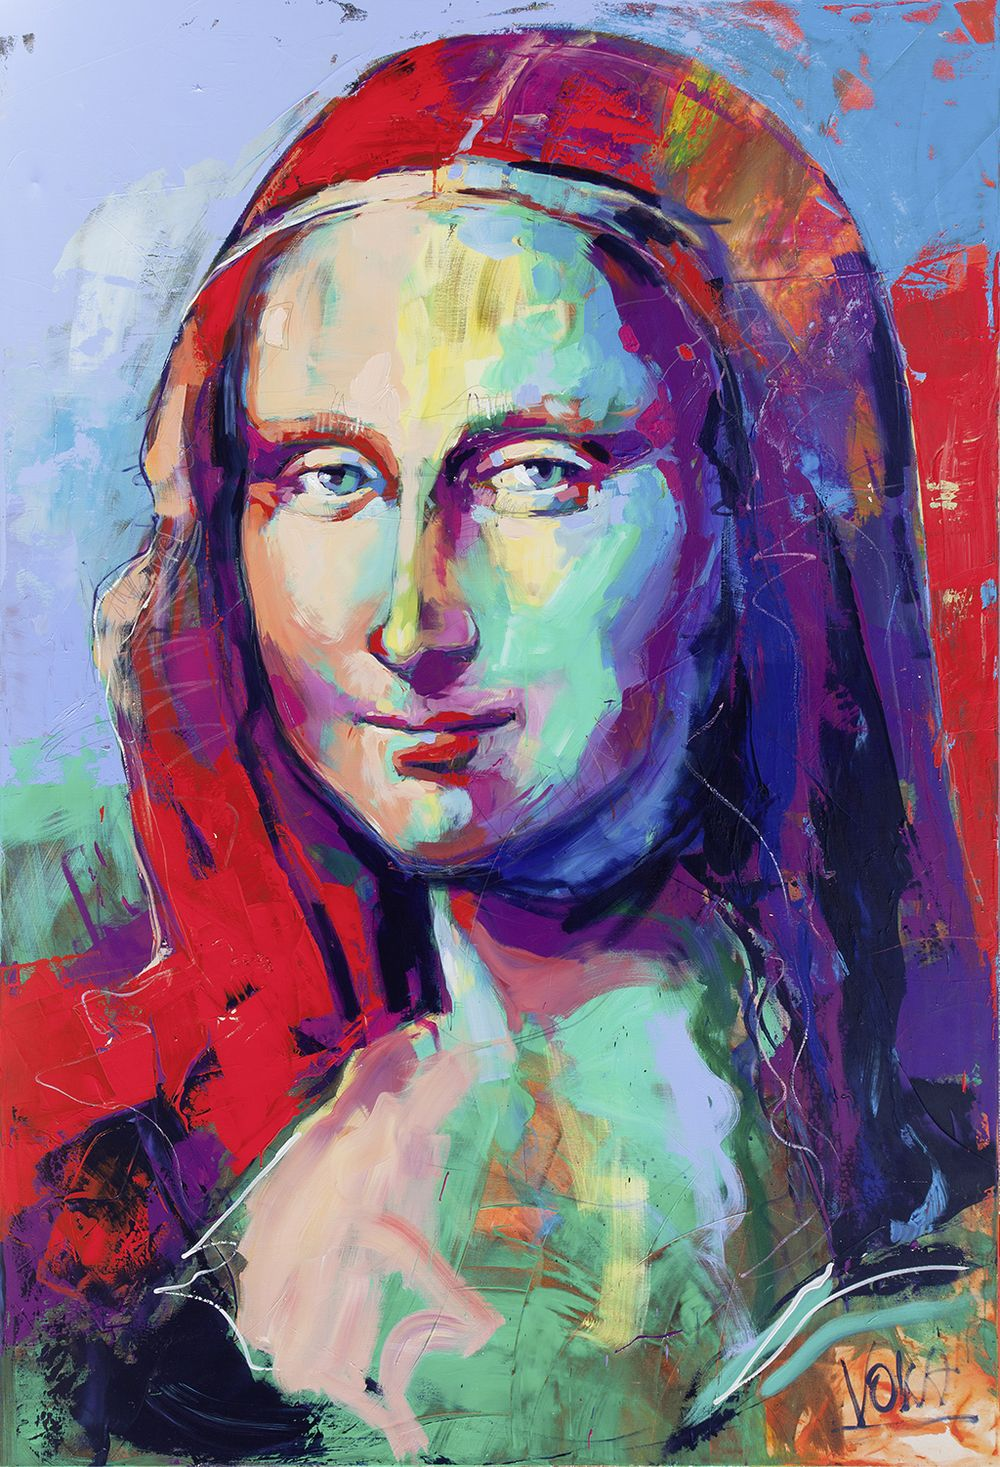 Mona Lisa 280x190 cm 110 24x74 8 inch acrylic on canvas